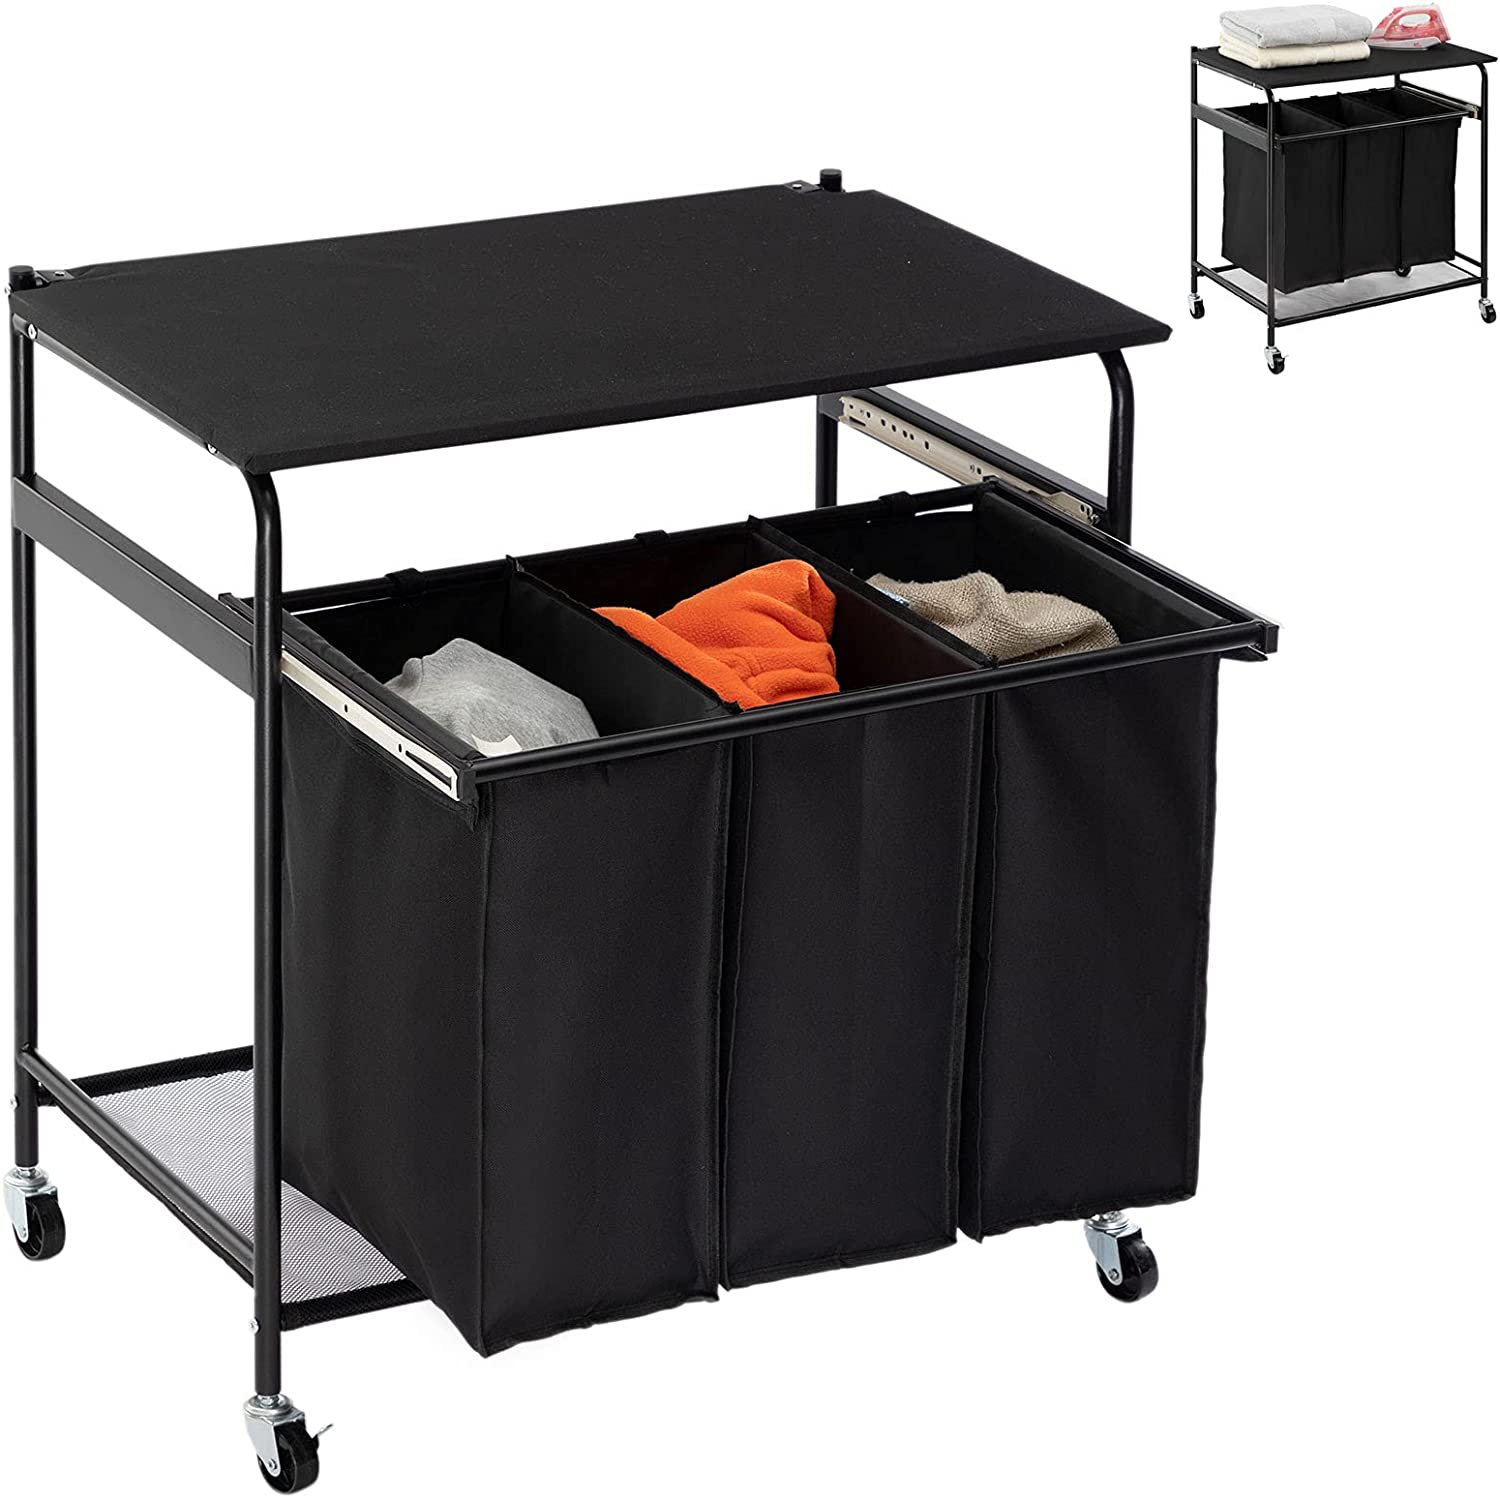 Don't miss the campaign PARANTA Laundry Sorter Cart with Ironing Board pull Side 3-Bag Industry No. 1 H